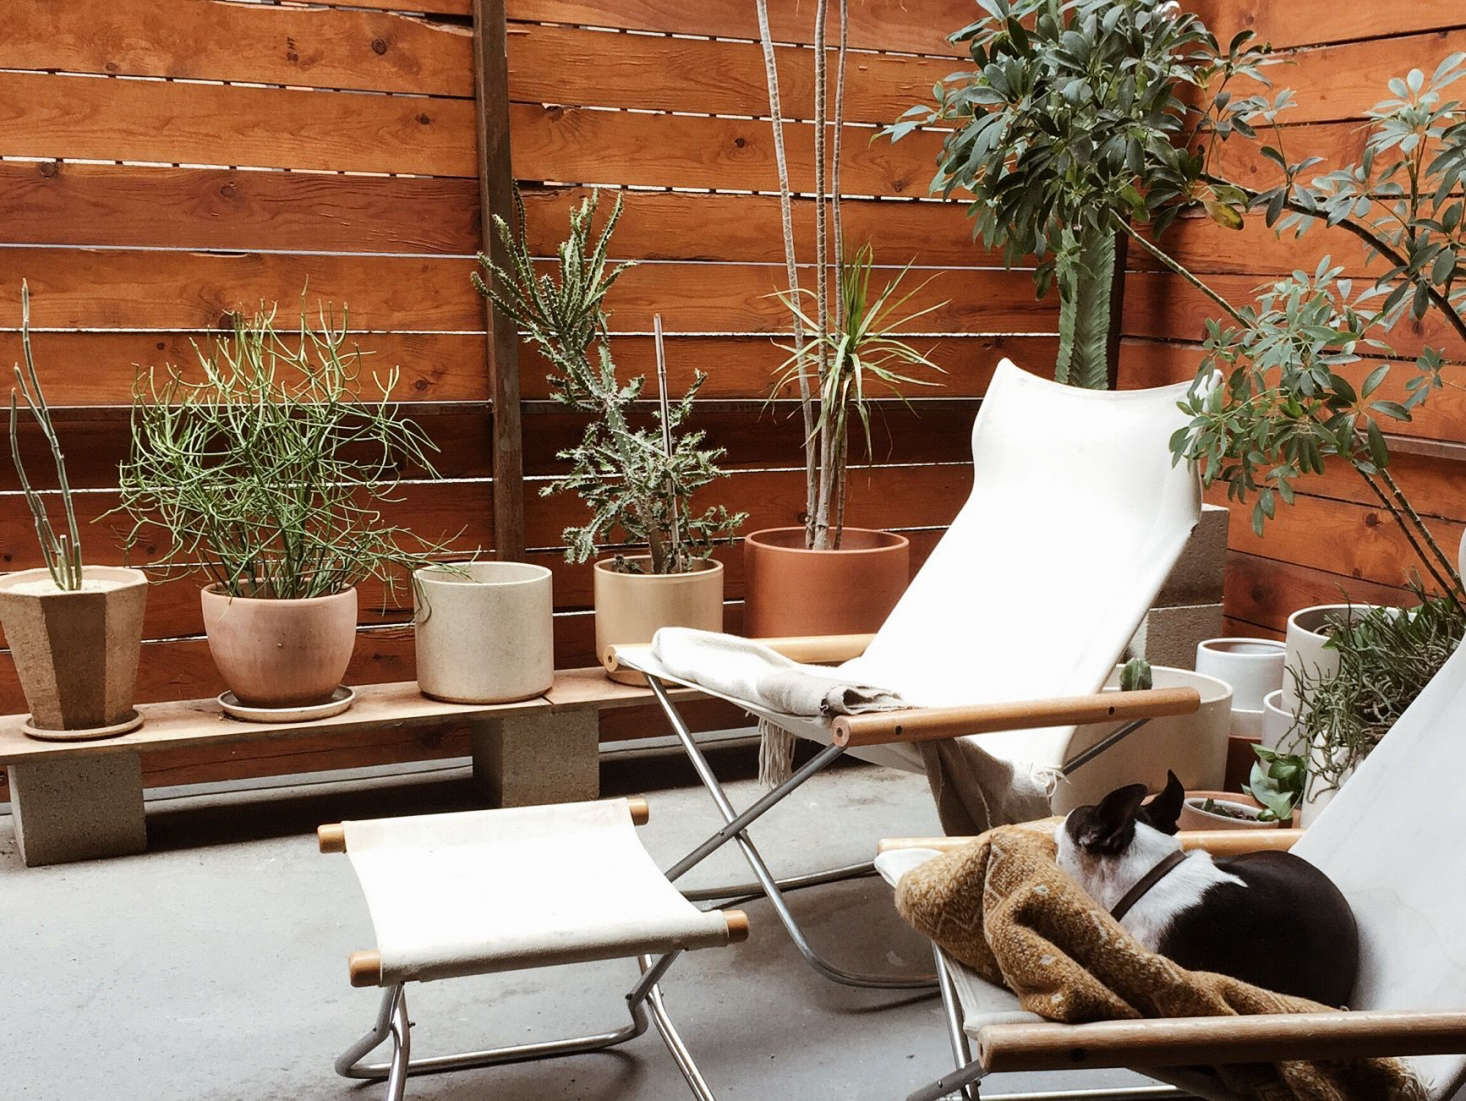 On their outside patio, appropriately adorned with drought-tolerant plants, a pair of Ny Rocking Chairs provide seating for humans and dogs.